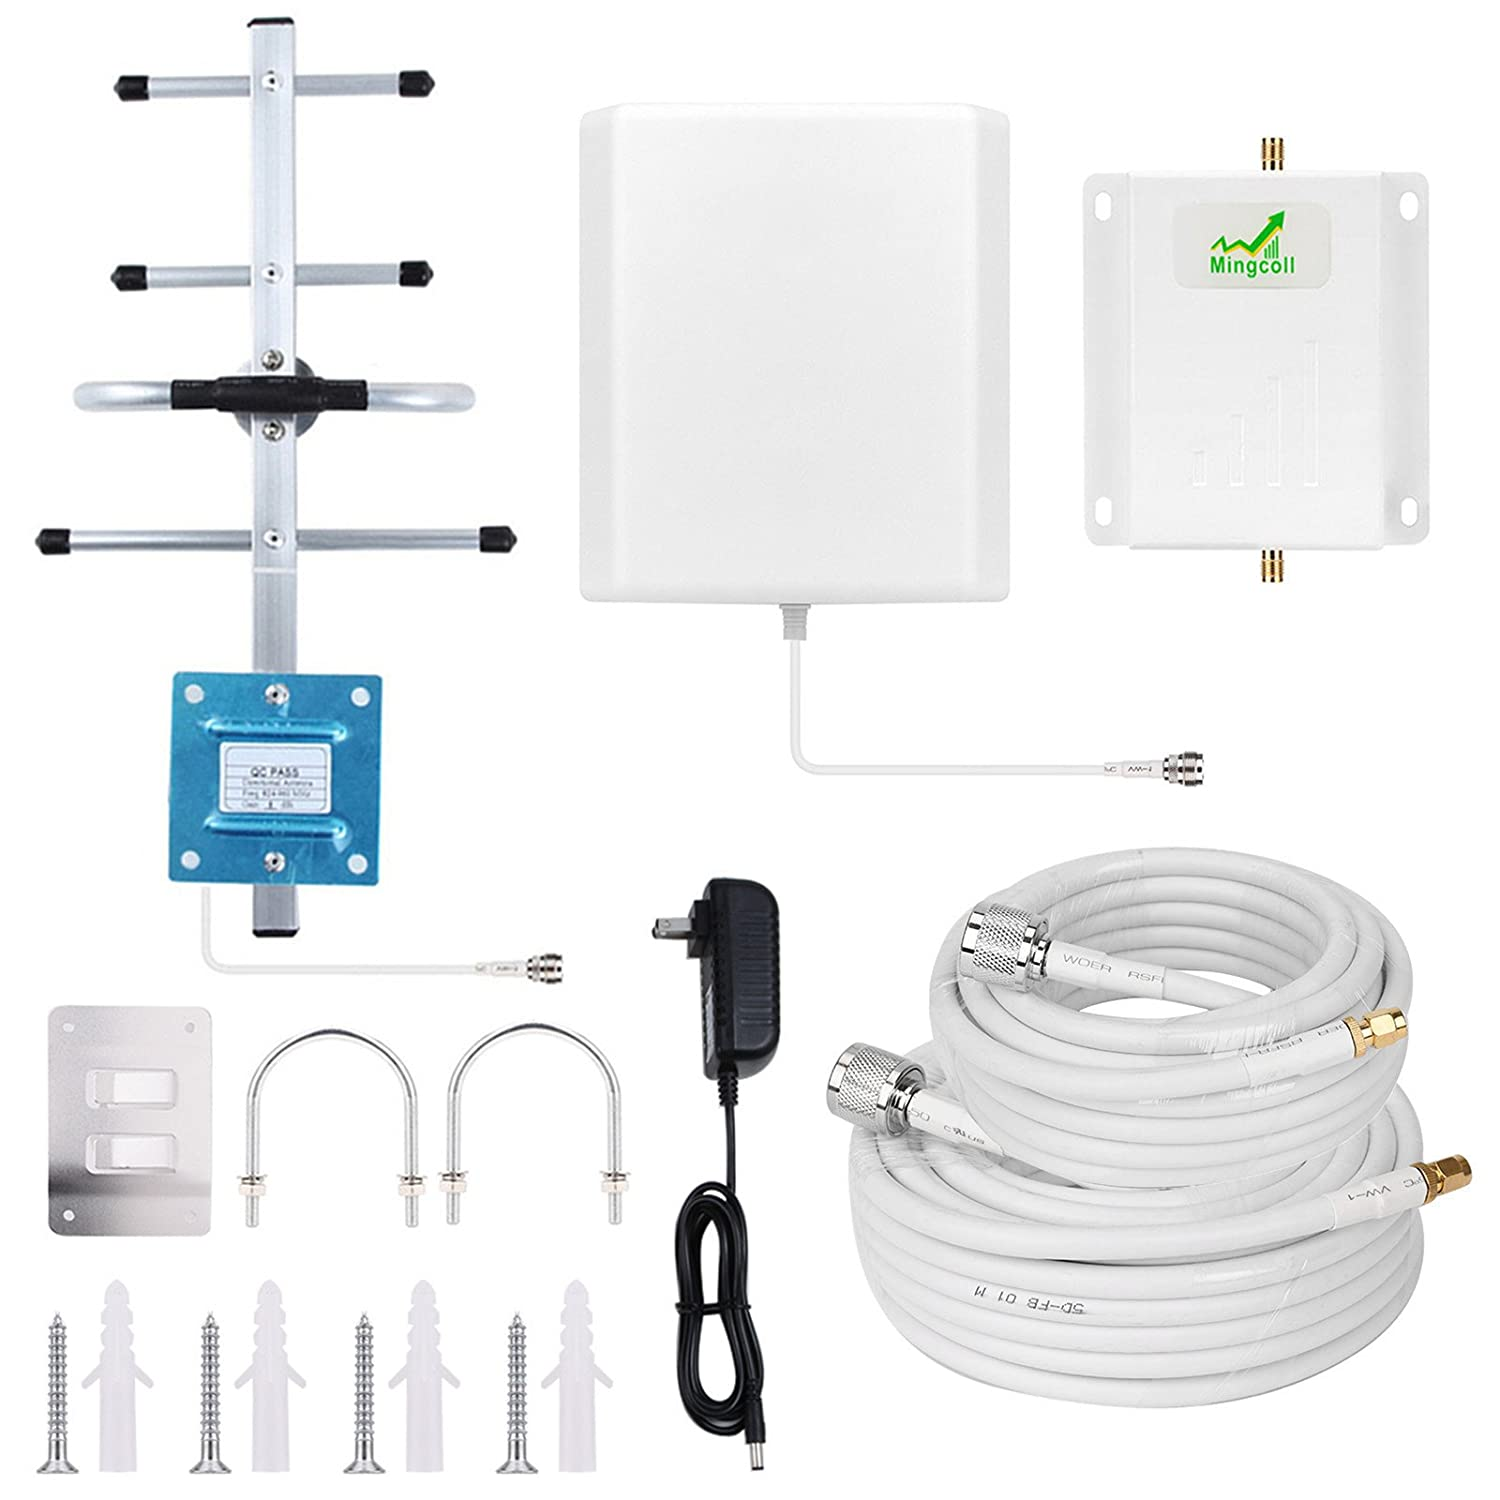 Cell Phone Signal Booster Repeater Home 4G LTE 700MHz Band 13 Verizon Cell Booster Phone Signal Repeater Mingcoll FDD Cellular Cellphone Signal Amplifier Booster with Panel/Yagi Antenna (WV70-NN1)